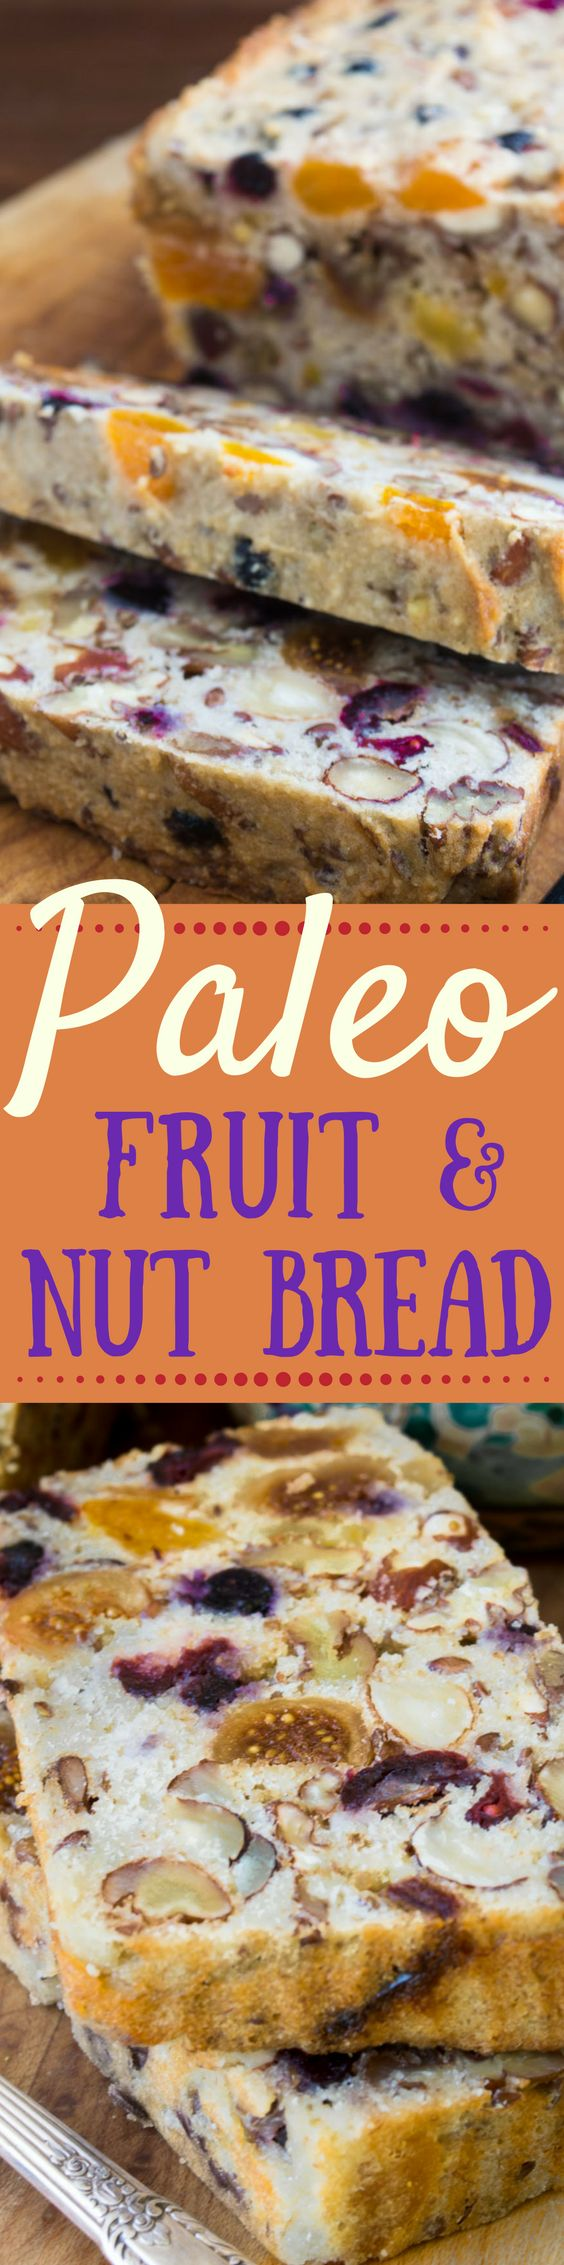 This Paleo Fruit and Nut Bread is grain, sugar, and dairy free. It's also amazingly versatile, and fabulous toasted! ~ theviewfromgreatisland.com